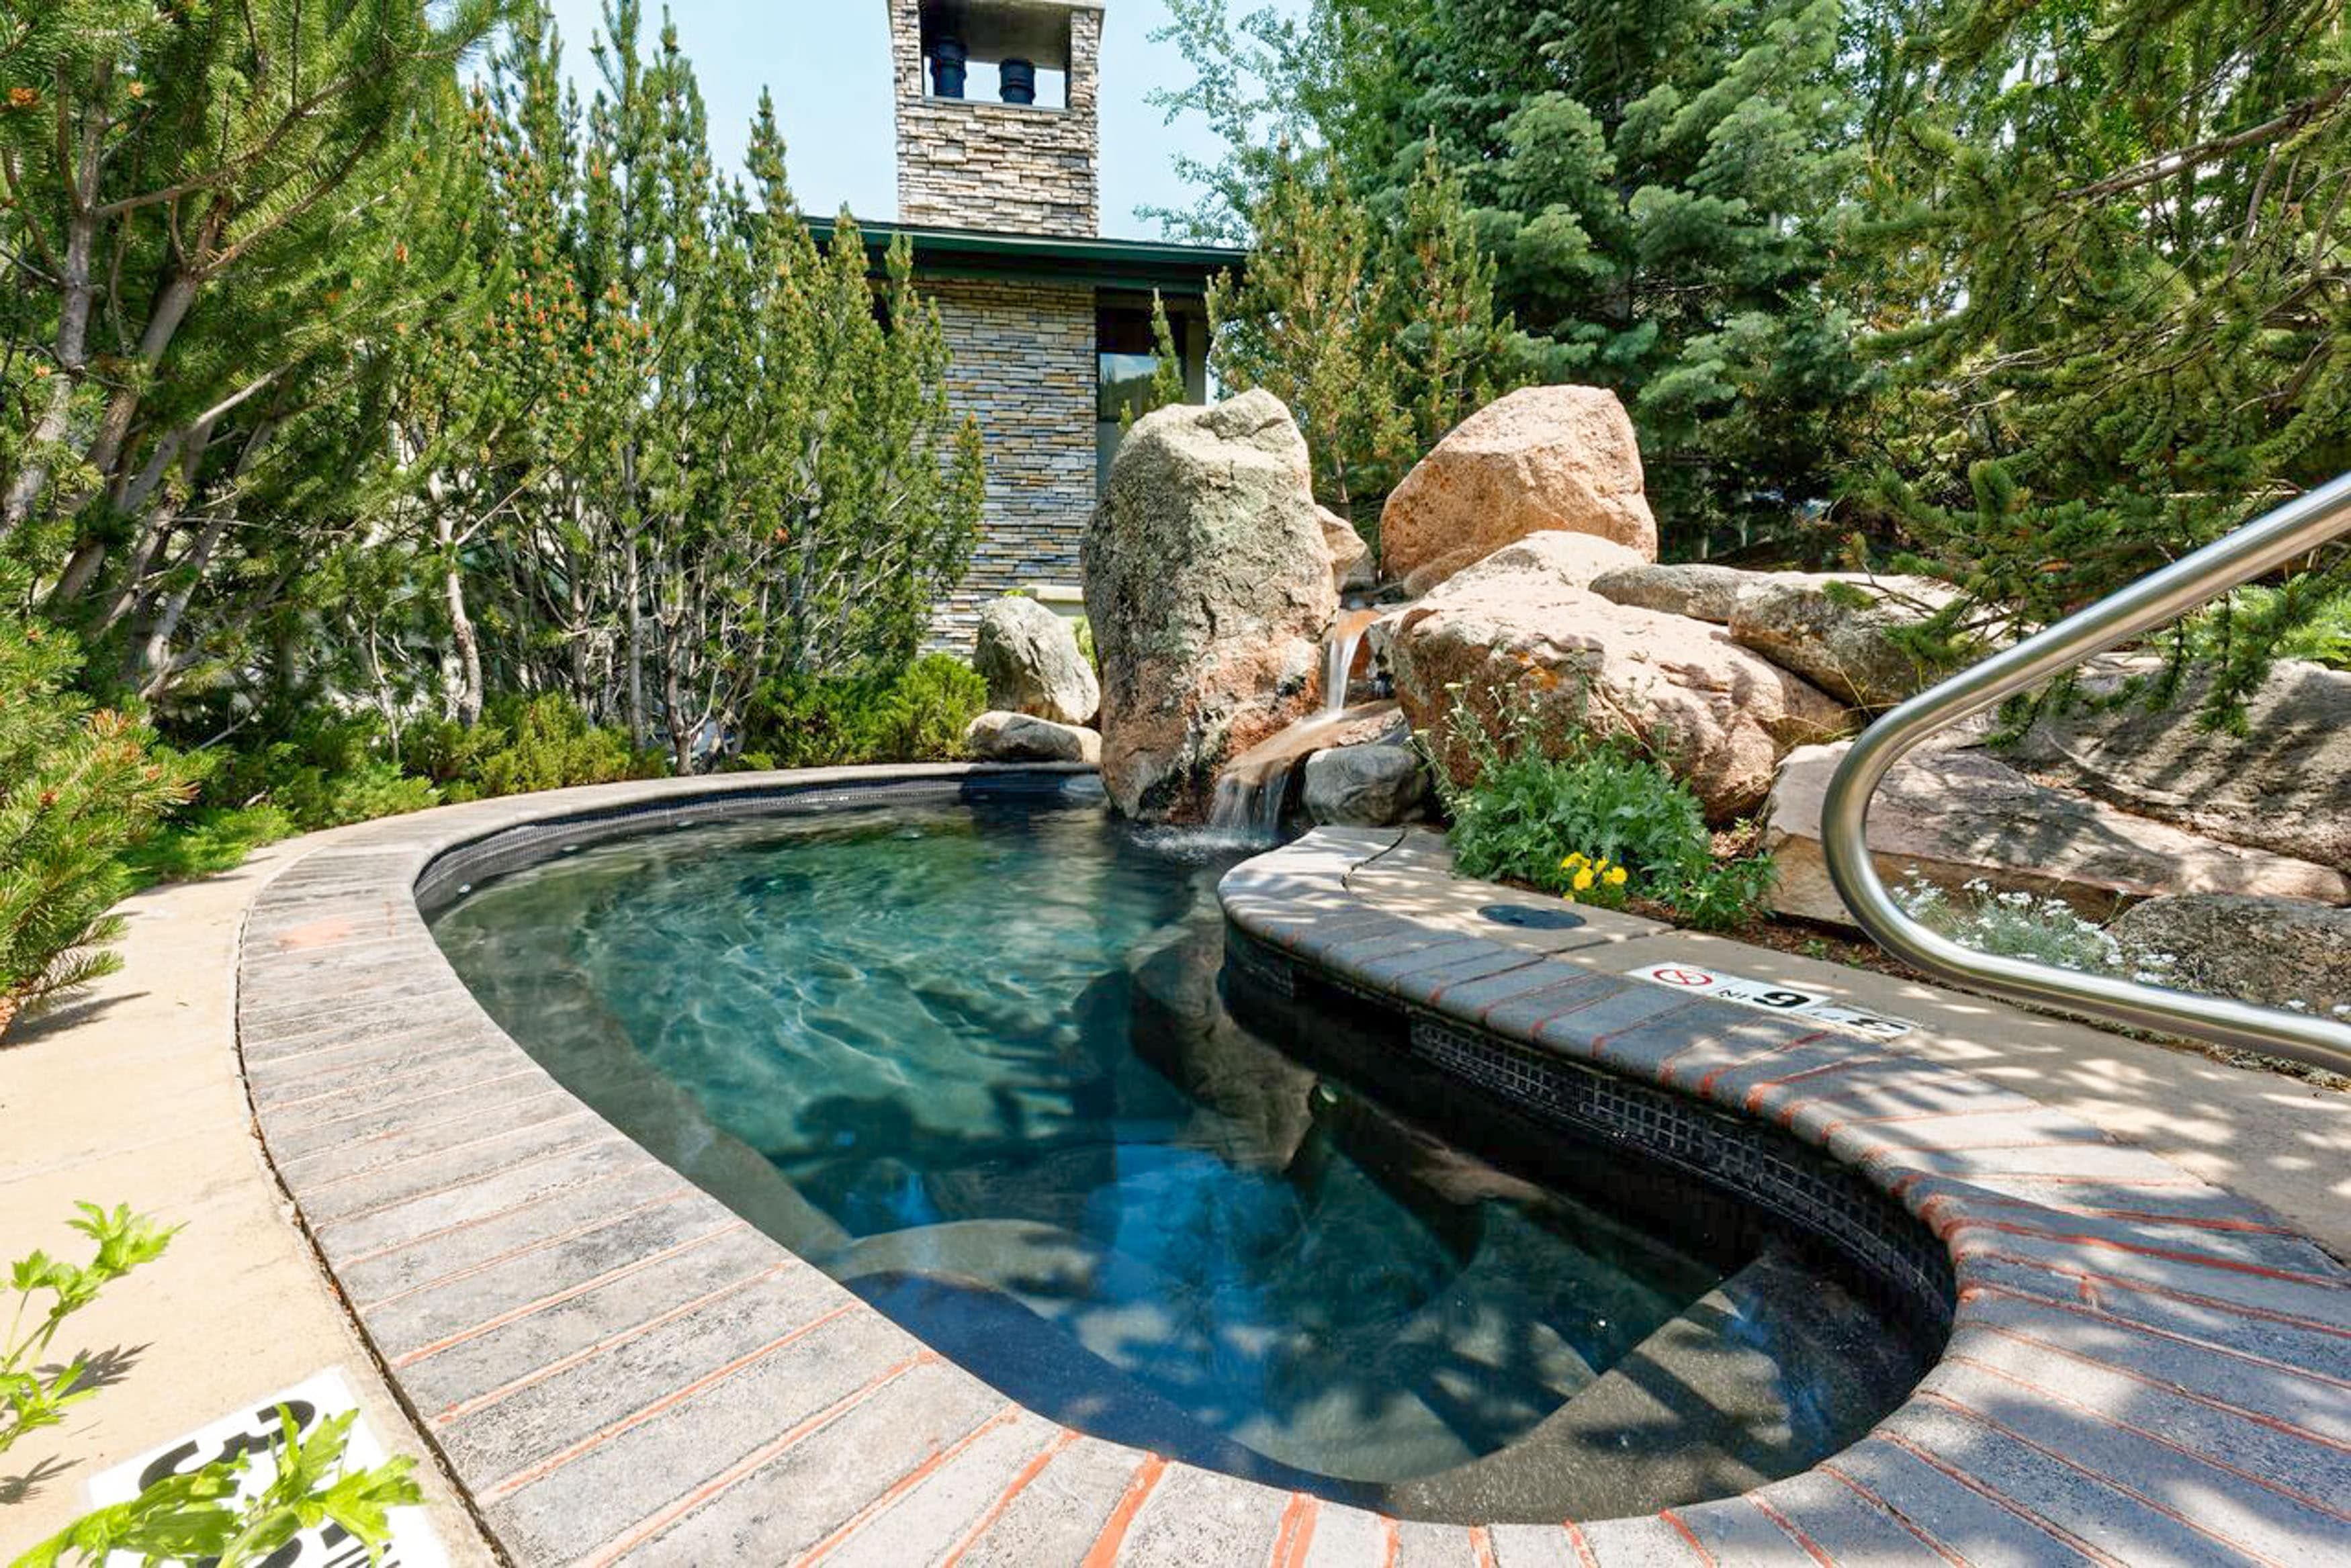 Relax and restore in the Tamarack Townhomes hot tubs.